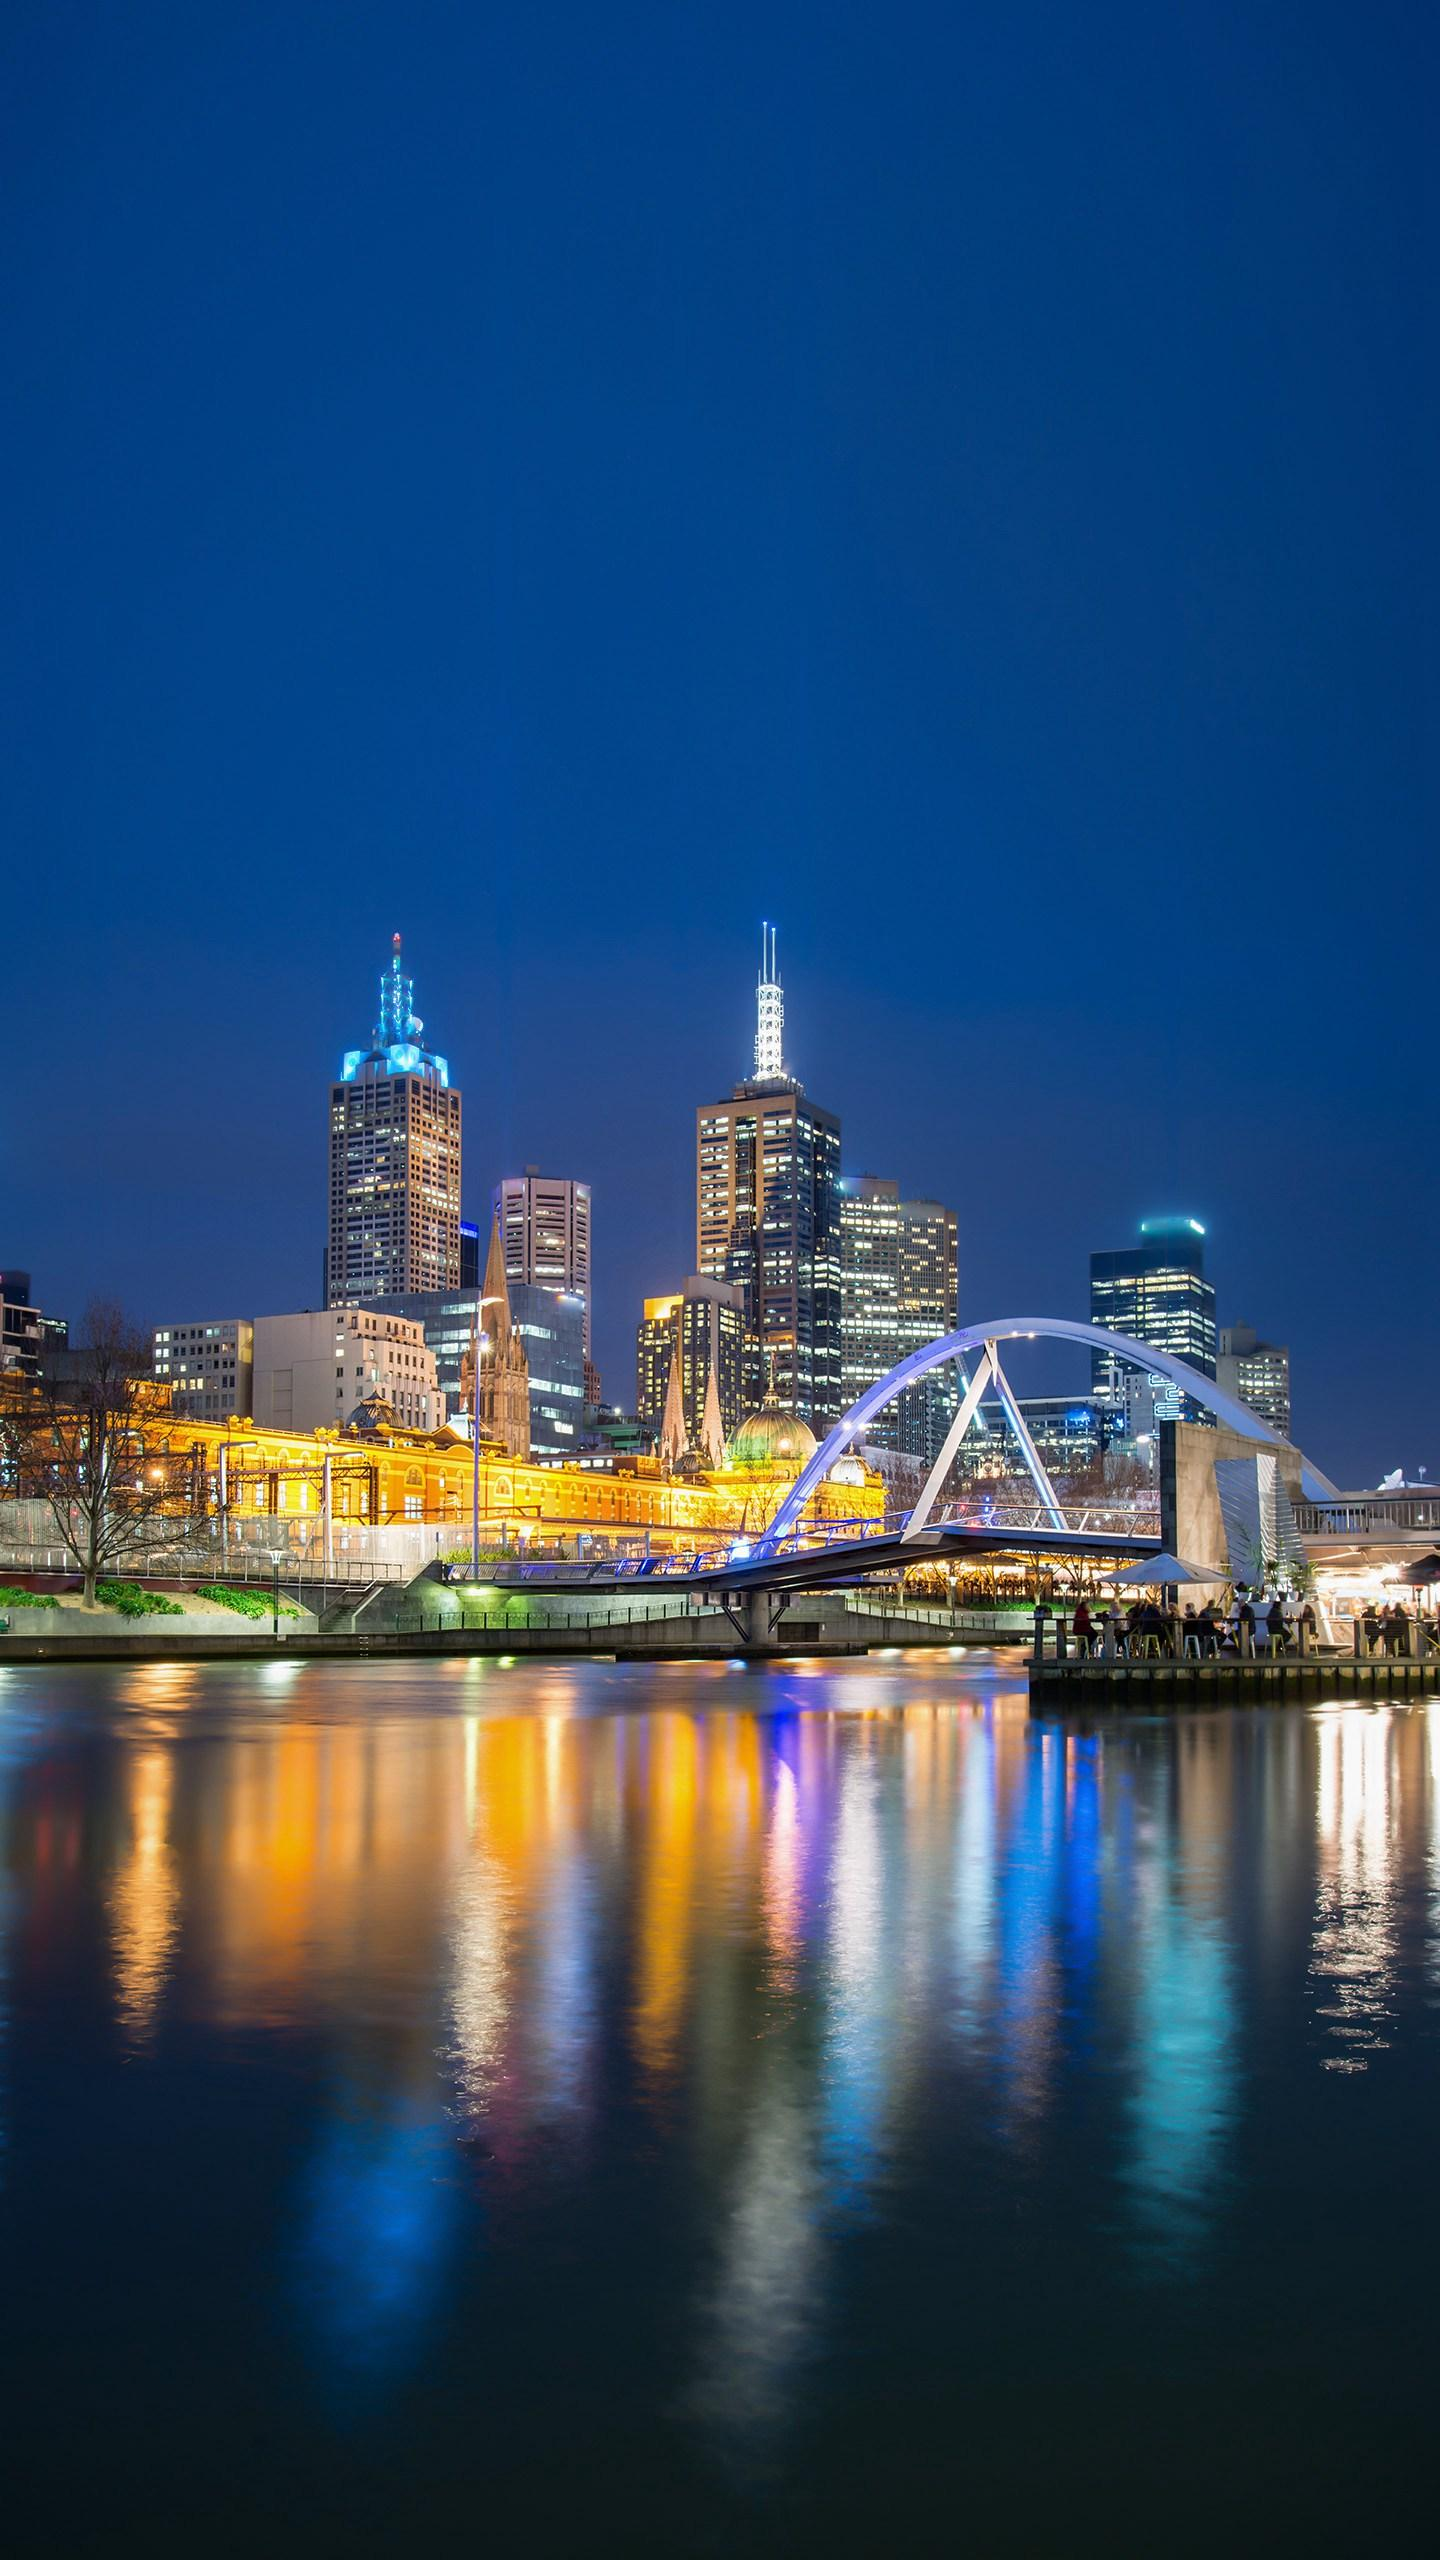 Australia - Melbourne. It attracts travelers from all over the world, from its glorious human history to its enticing entertainment.